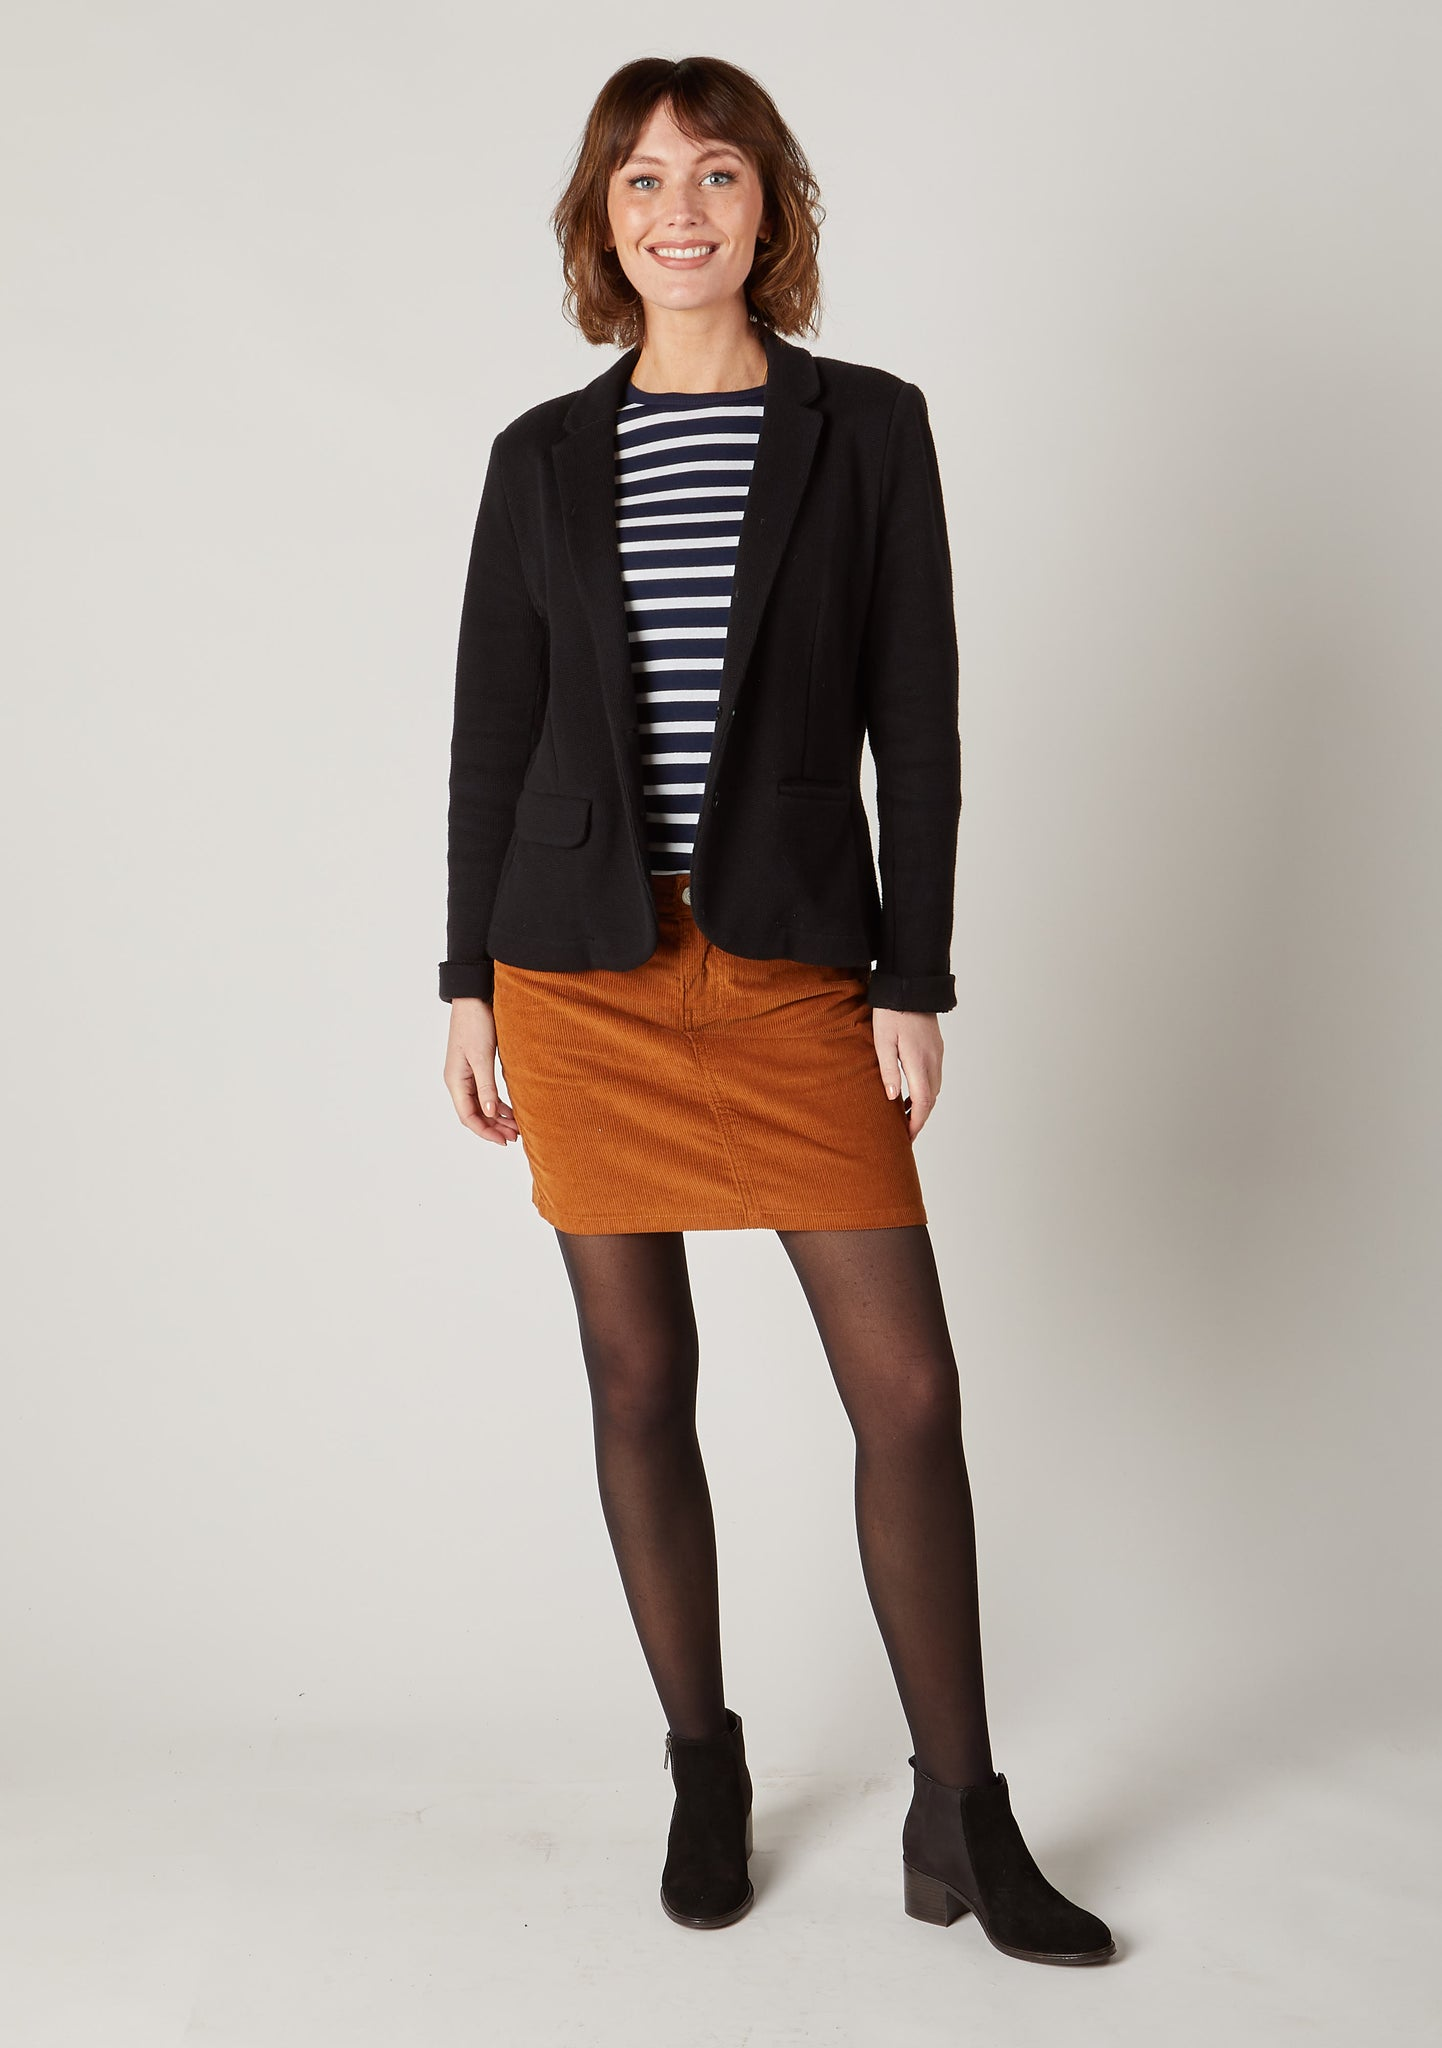 Full-length front pose of brown mini cord skirt styled with a smart black jacket.